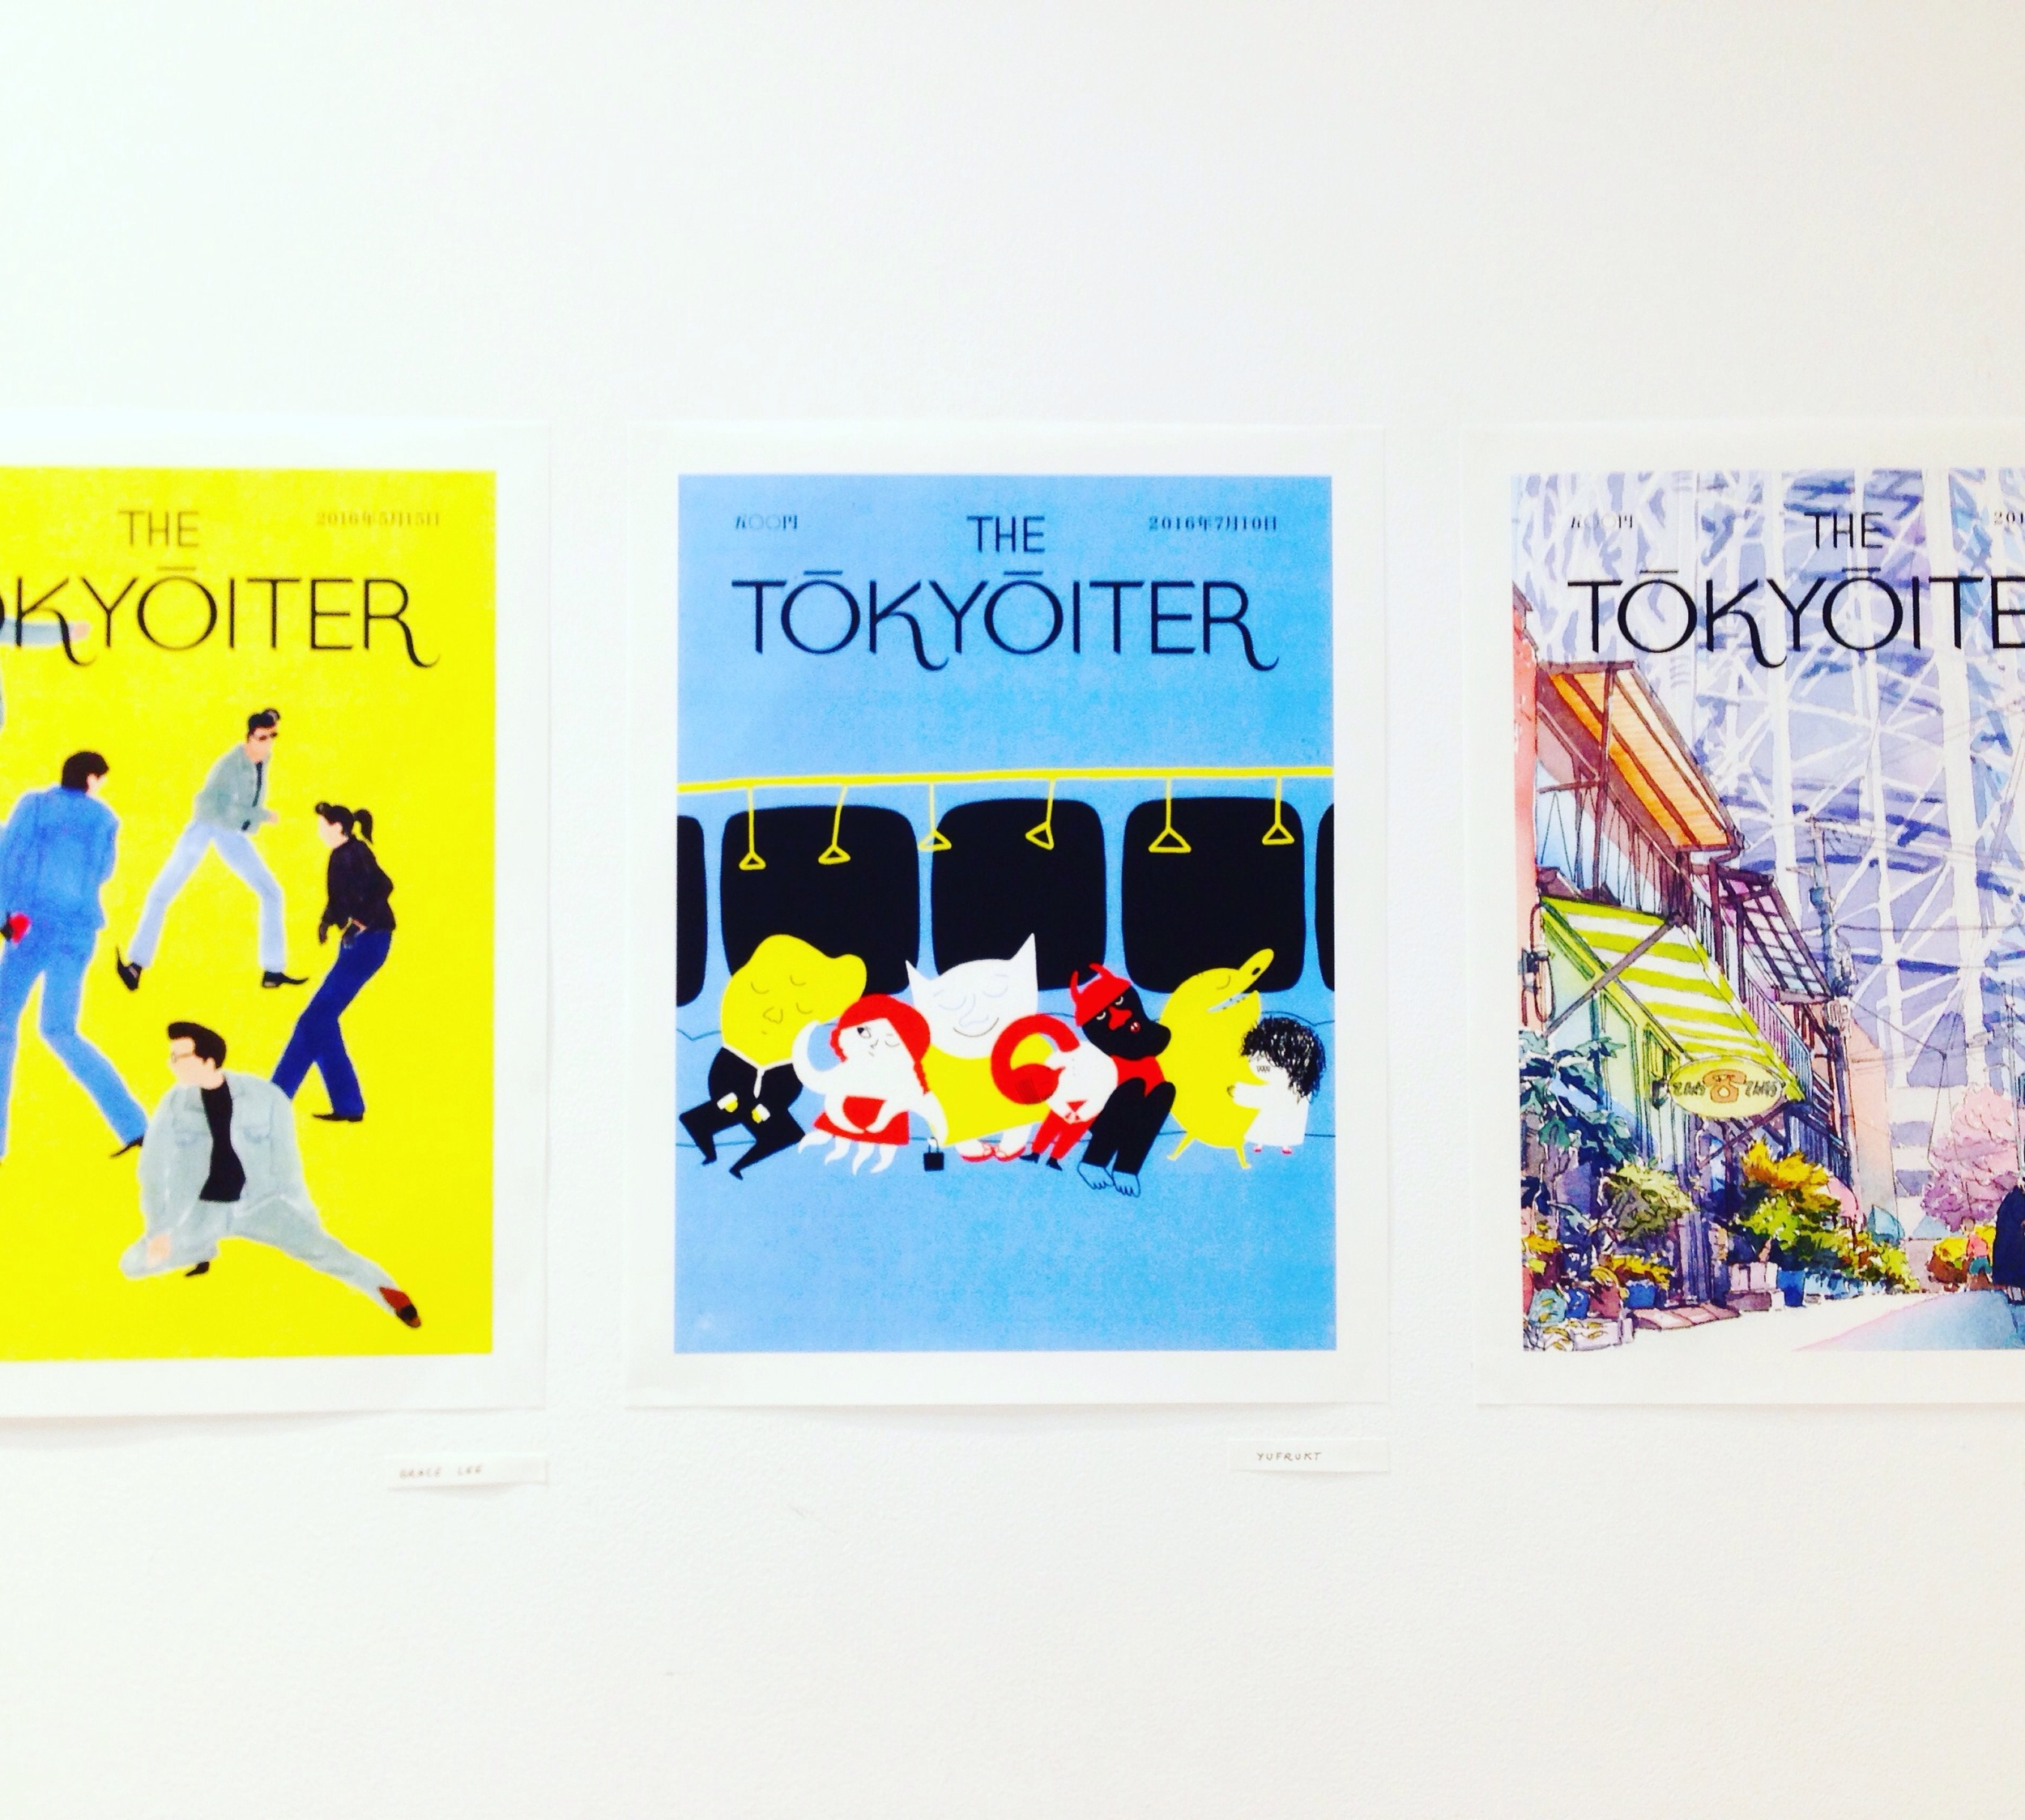 The Tokyoiter covers